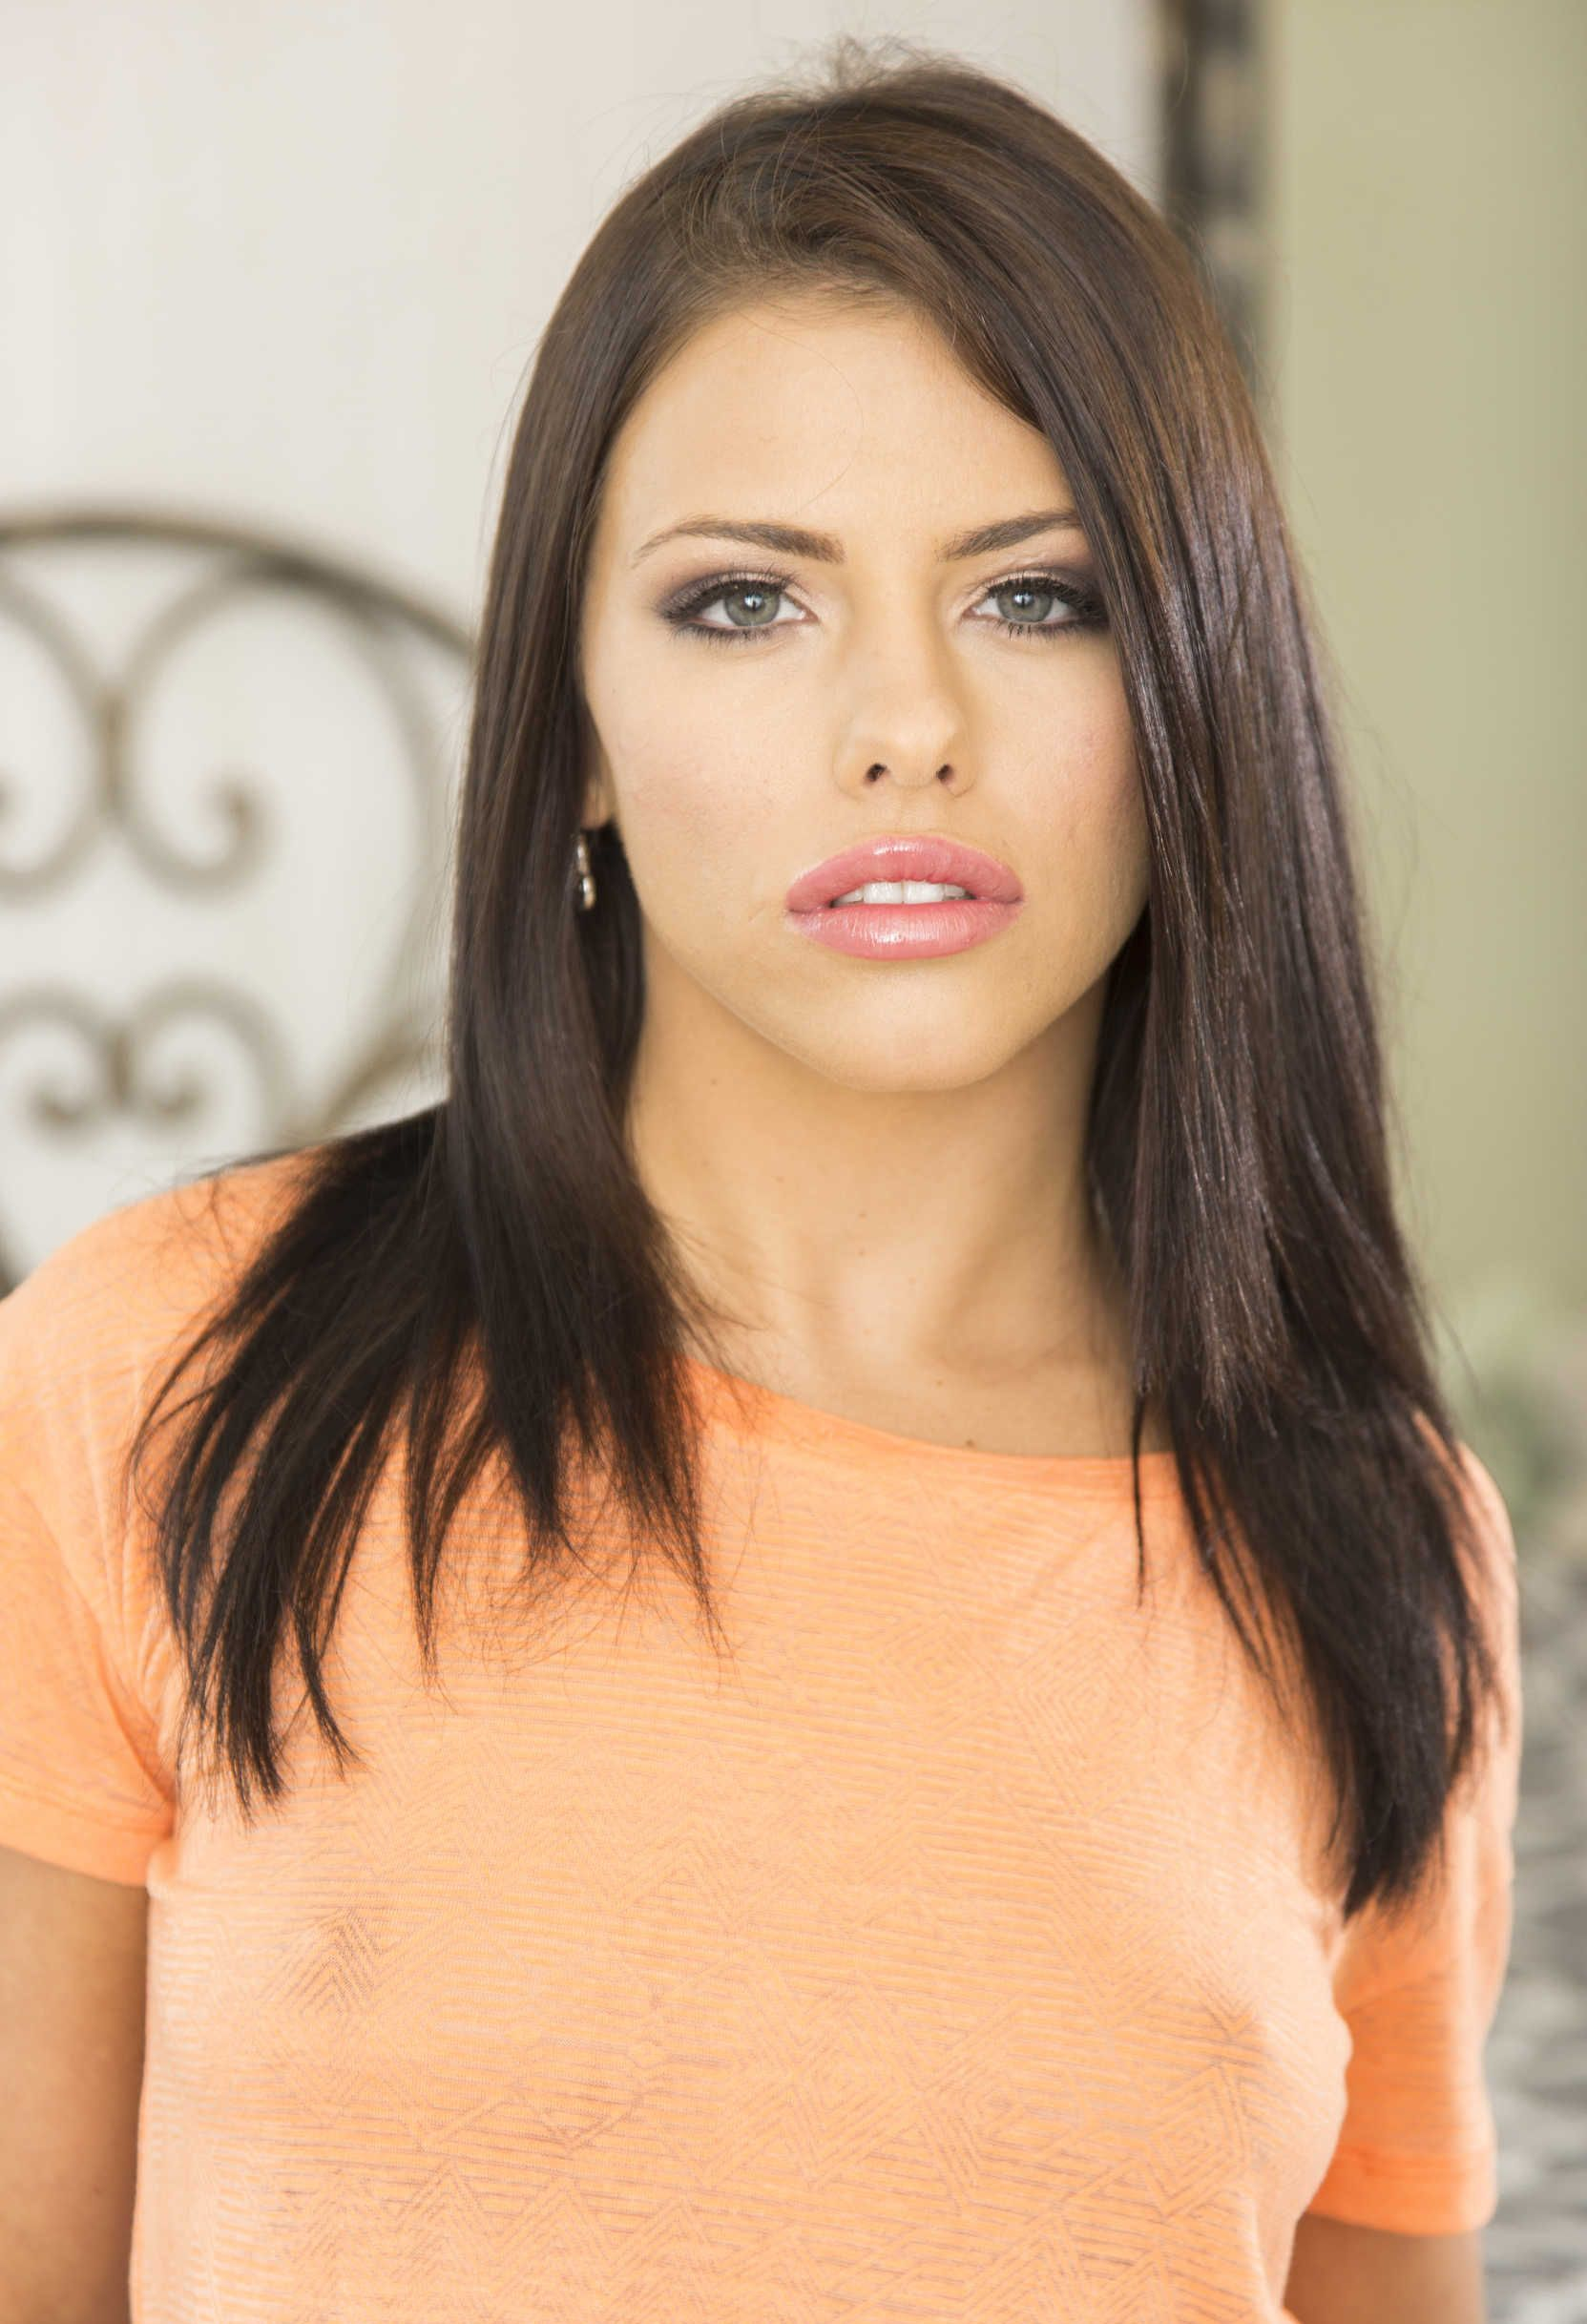 adriana chechik | sexy | pinterest | stylish, models and girls